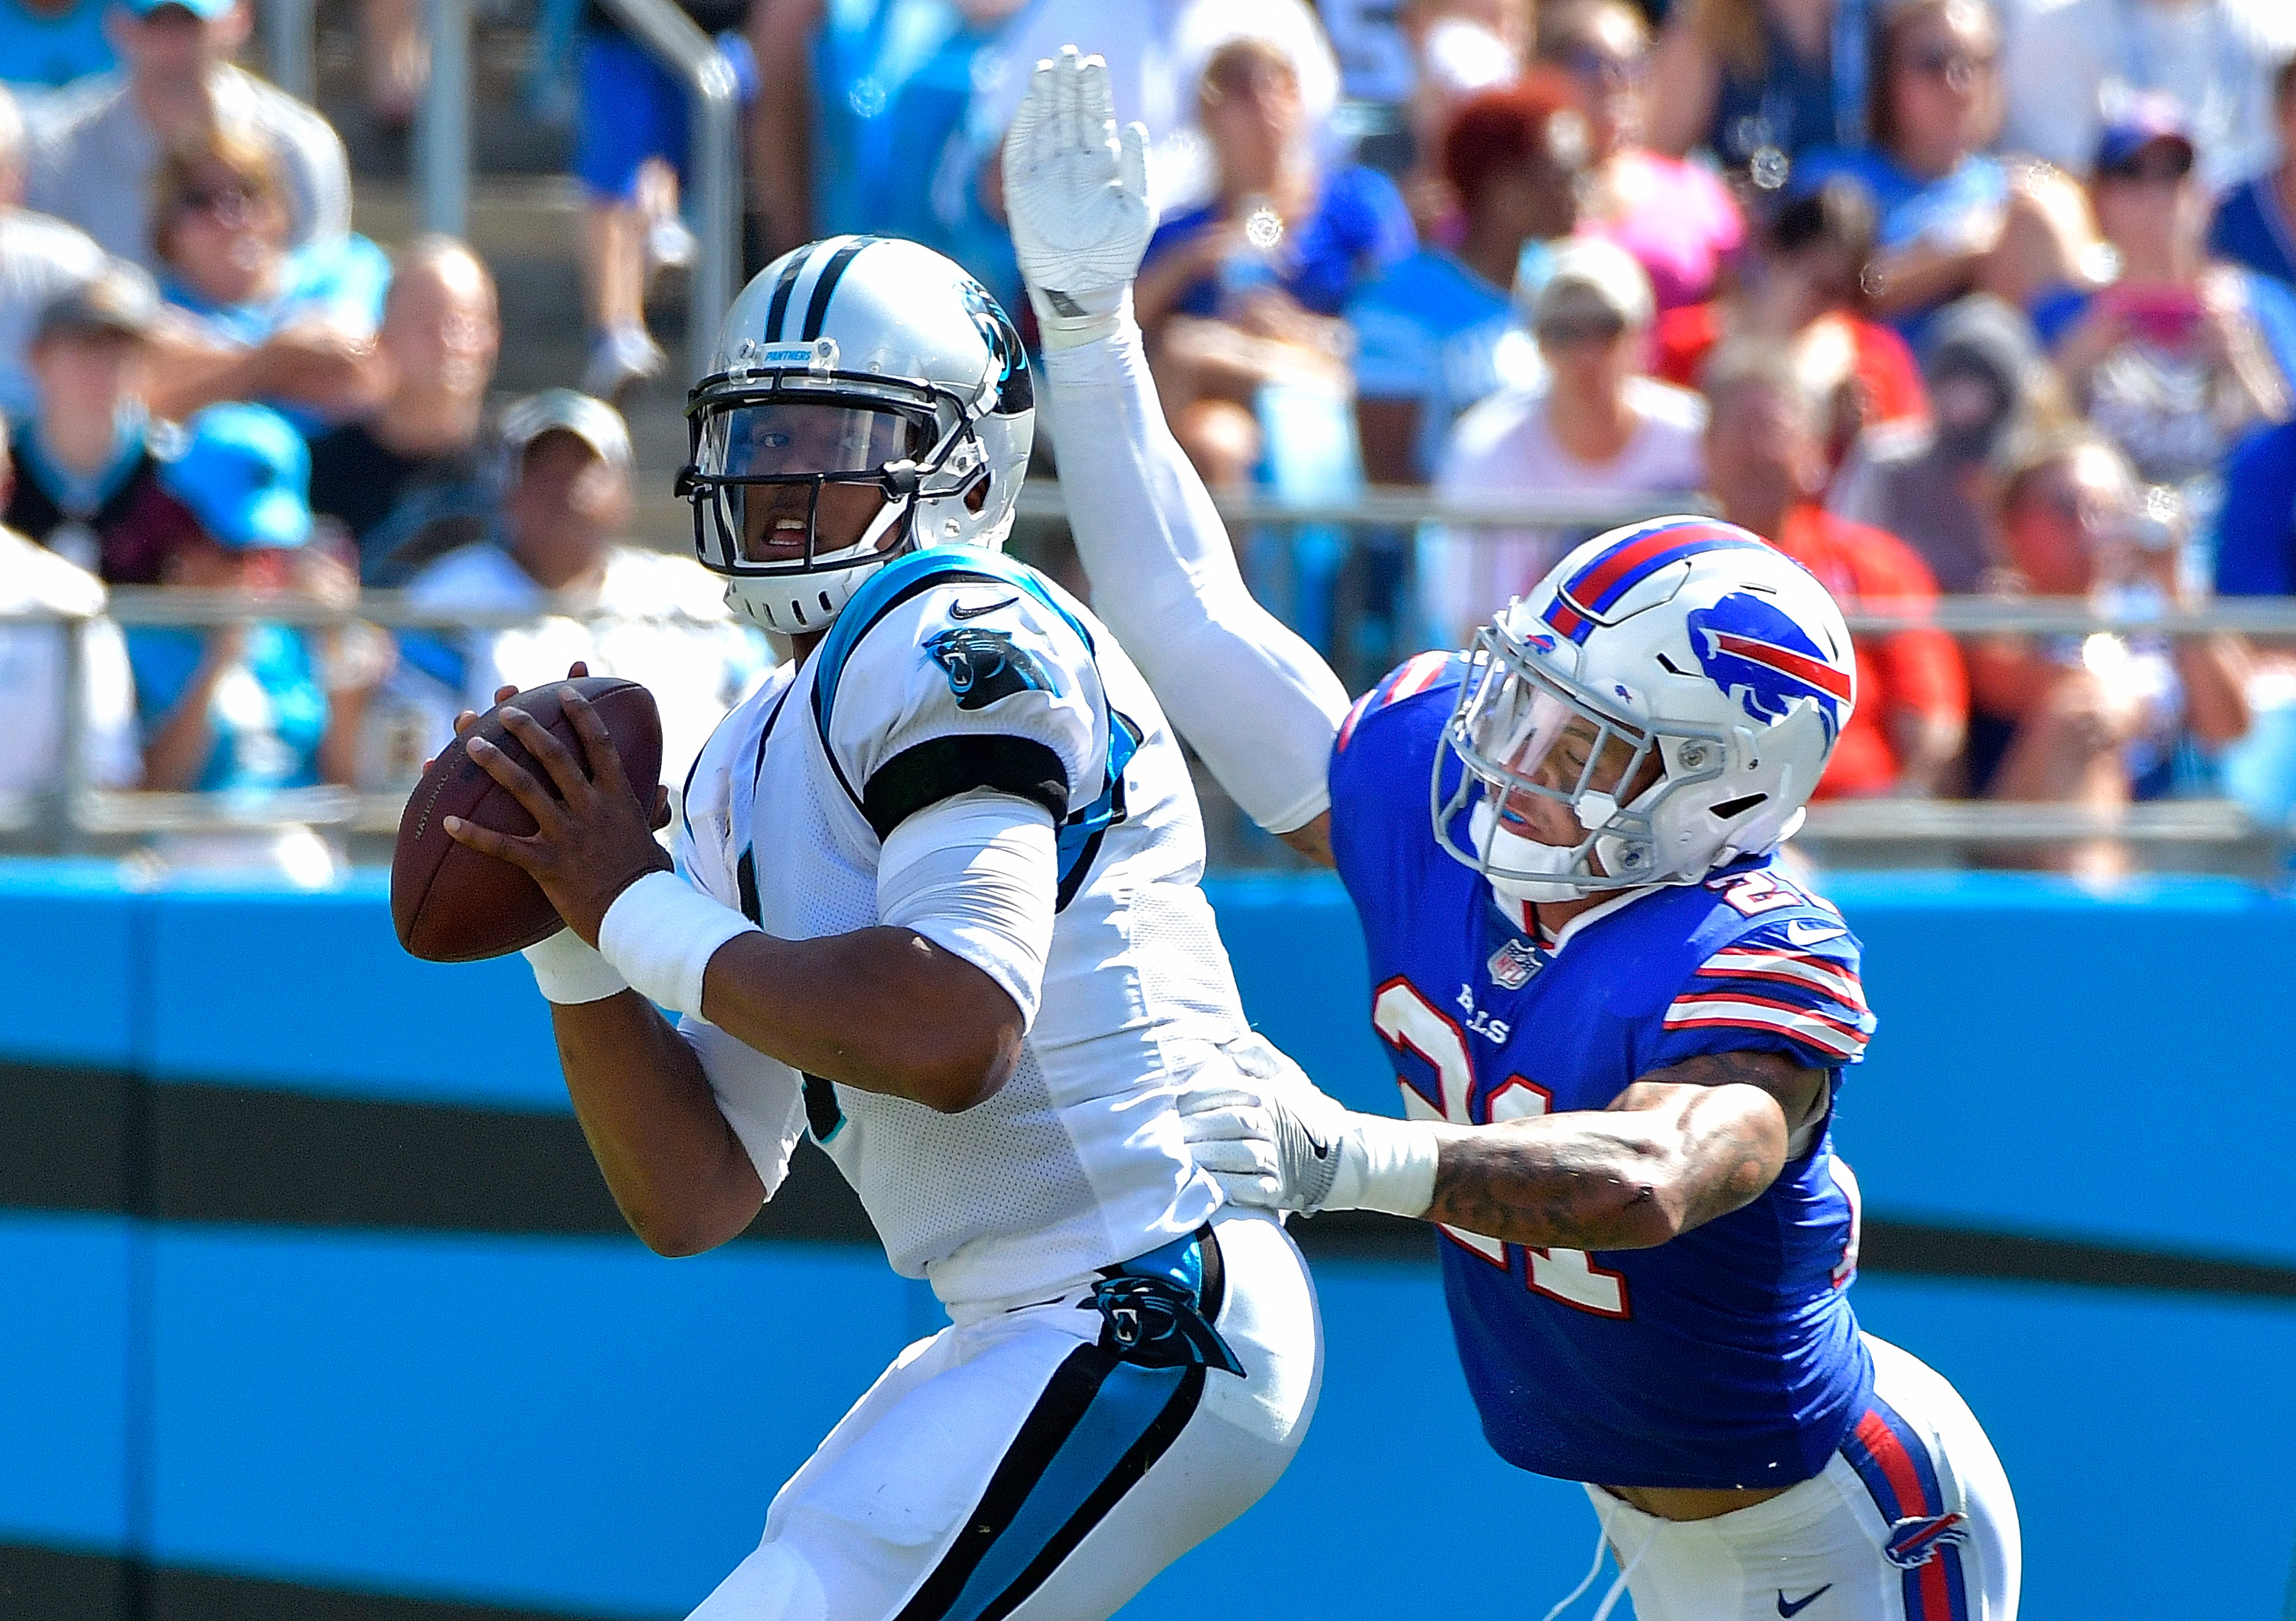 List of Joe: Bills/Panthers recap- Stats, commentary, and swear words